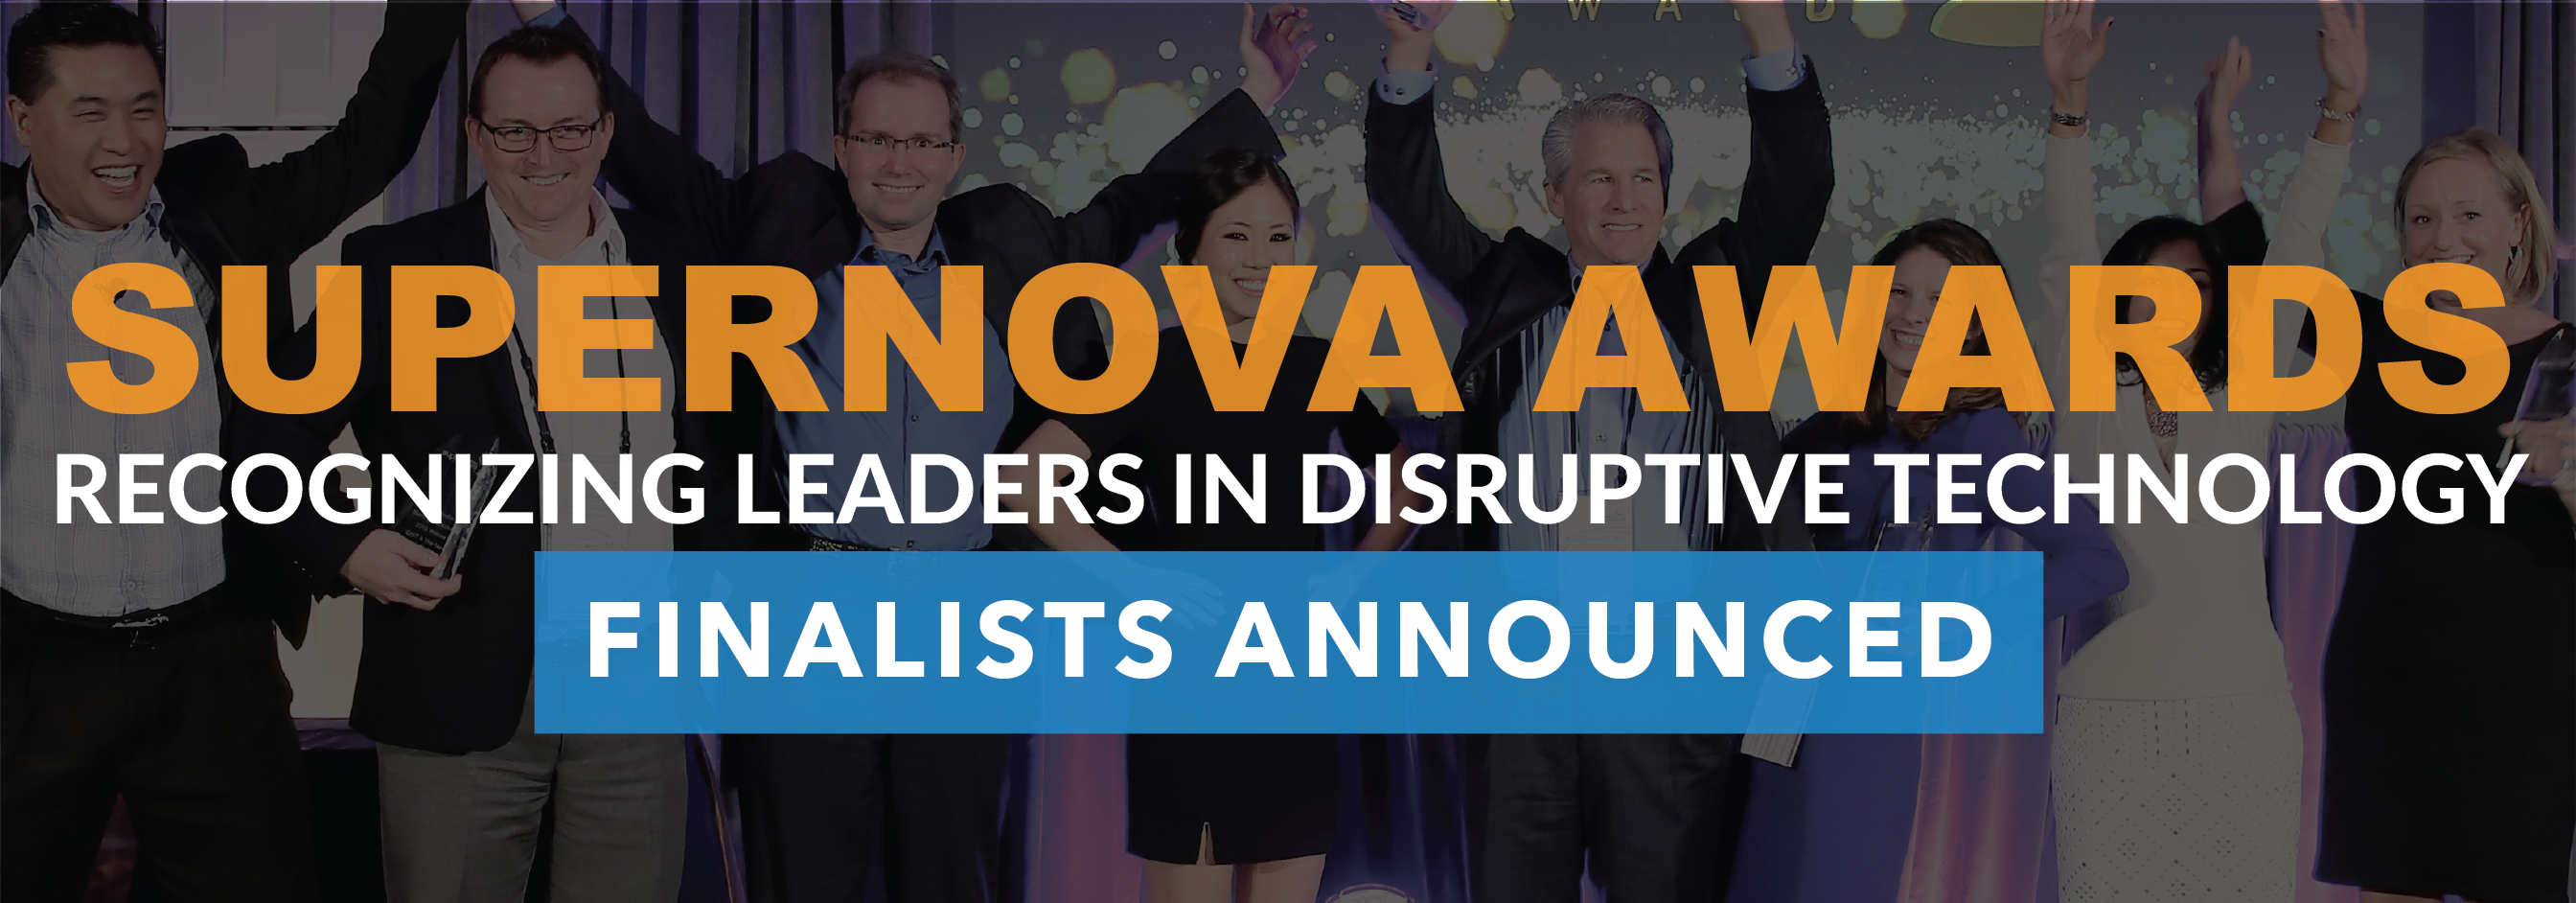 SuperNova Award finalists announced